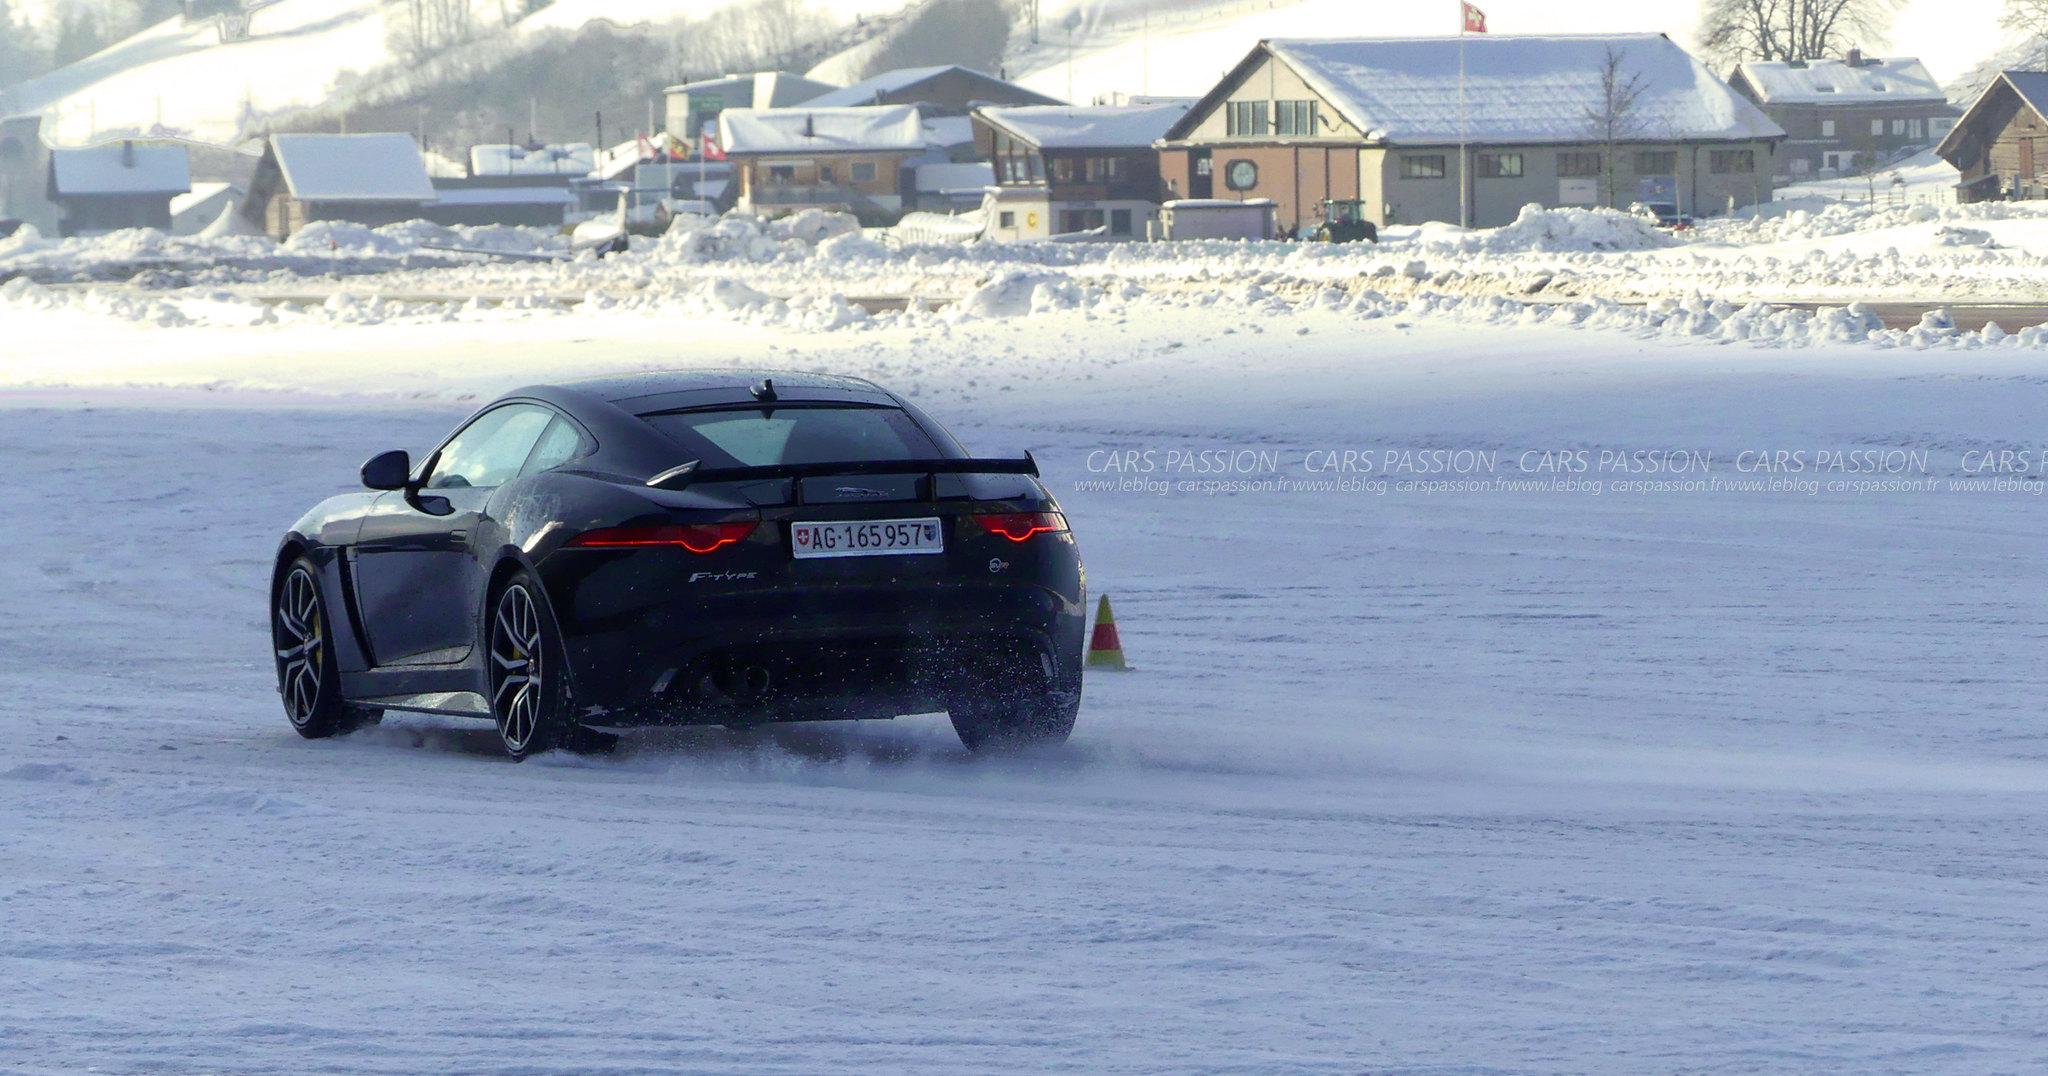 jaguar-land-rover-ice-drivng-esperience-gstaad (7)